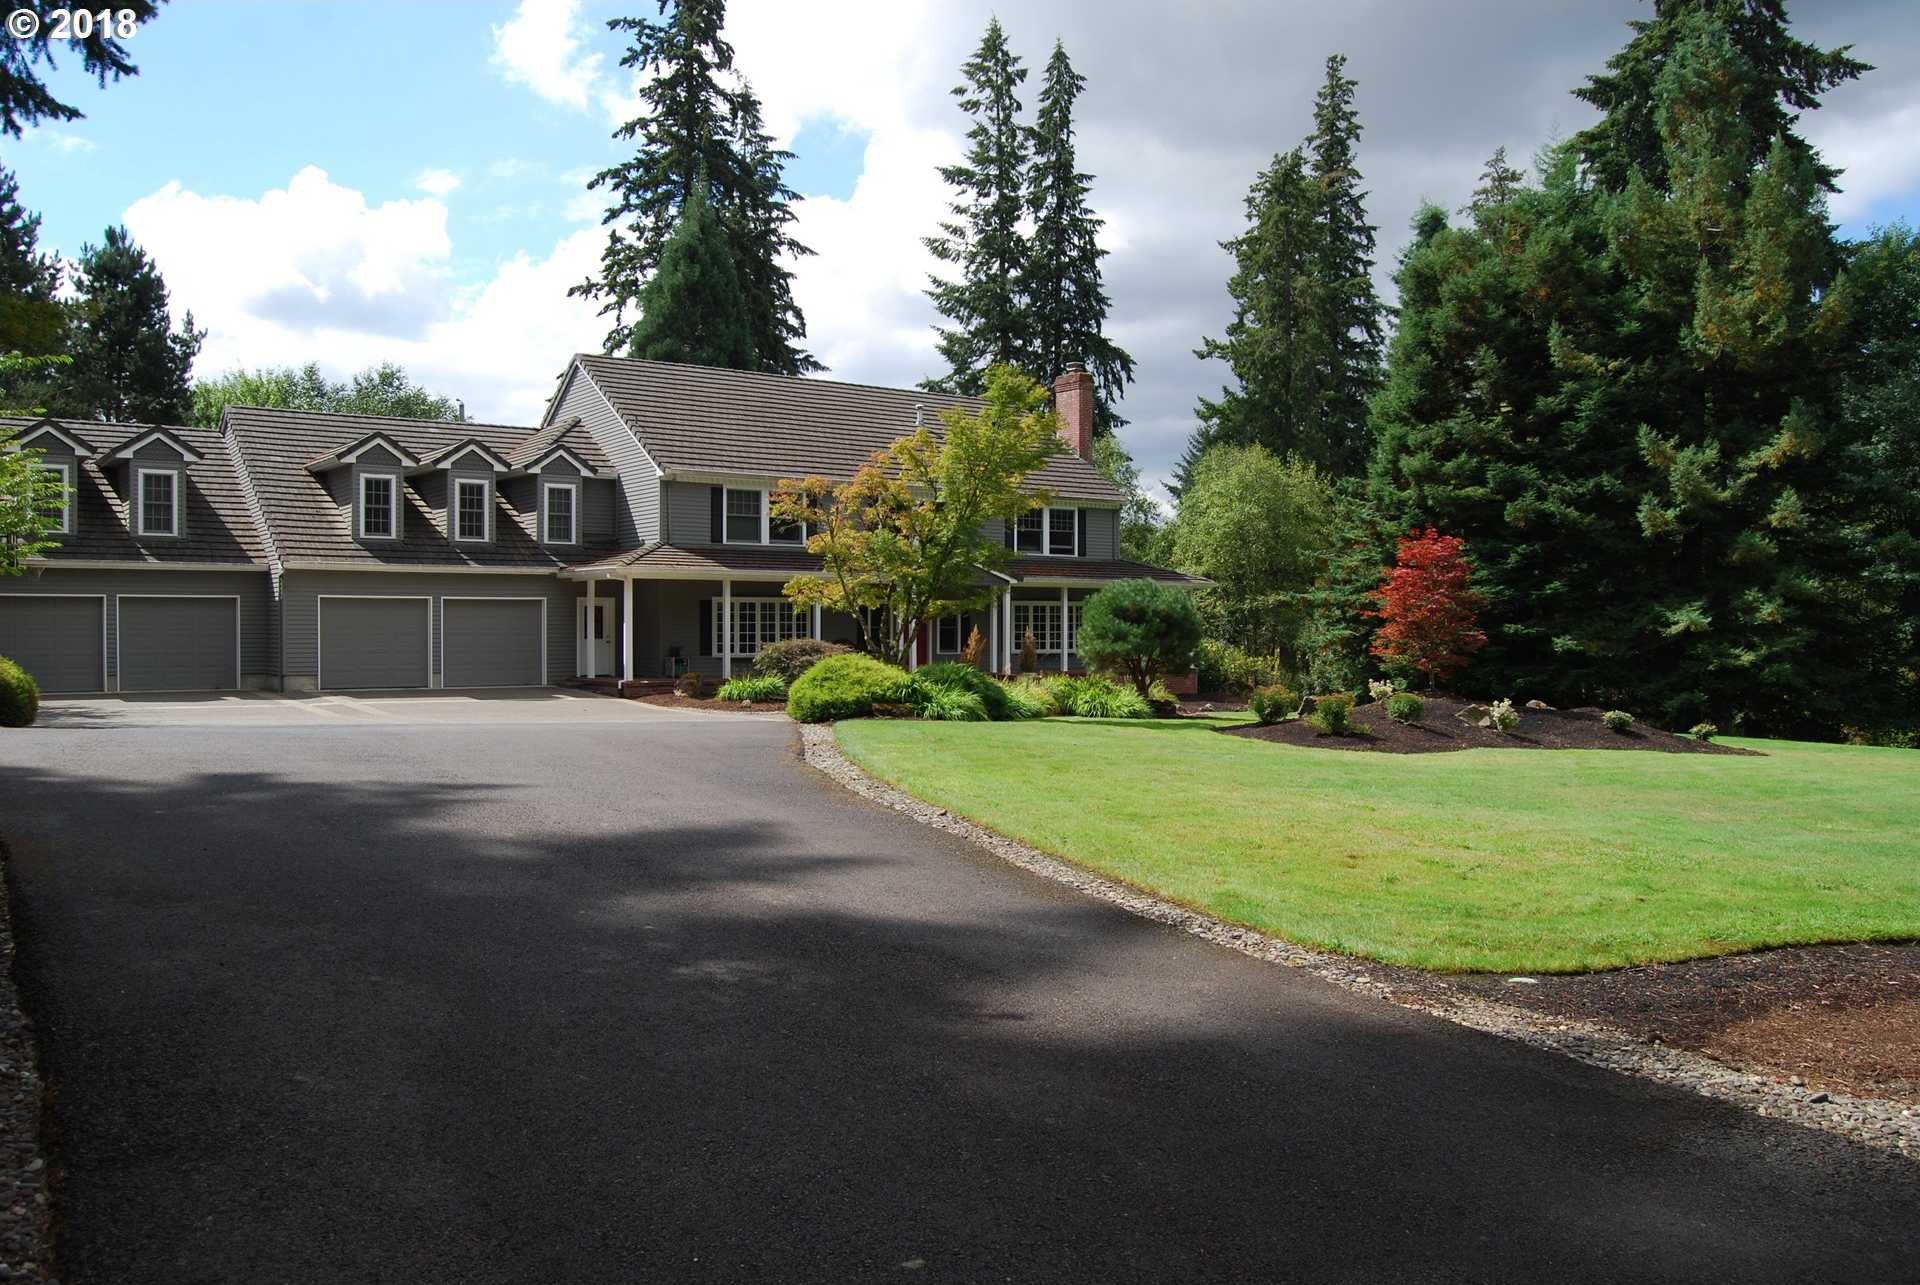 $1,599,000 - 4Br/7Ba -  for Sale in Tualatin